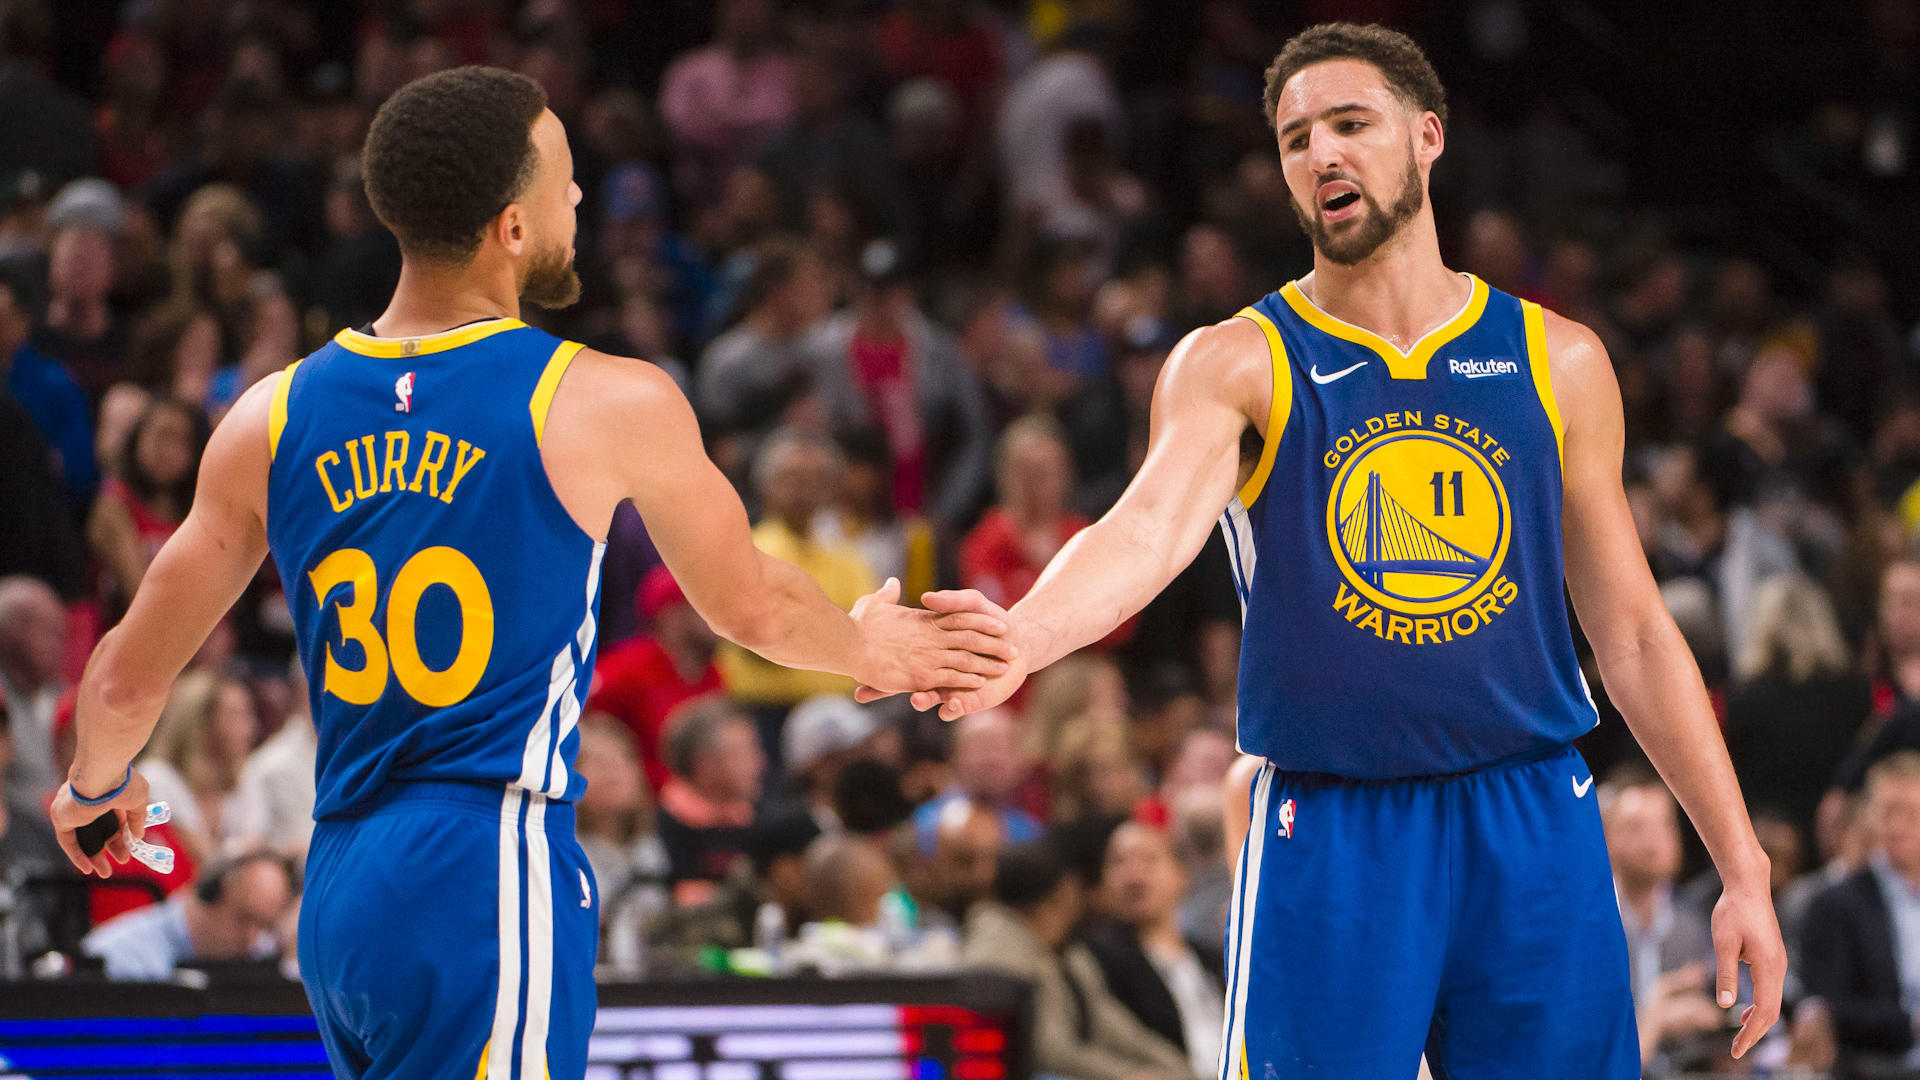 Warriors vs. Blazers Game 3 score, takeaways: Steph Curry, Draymond Green lead Golden State to comeback win, 3-0 lead